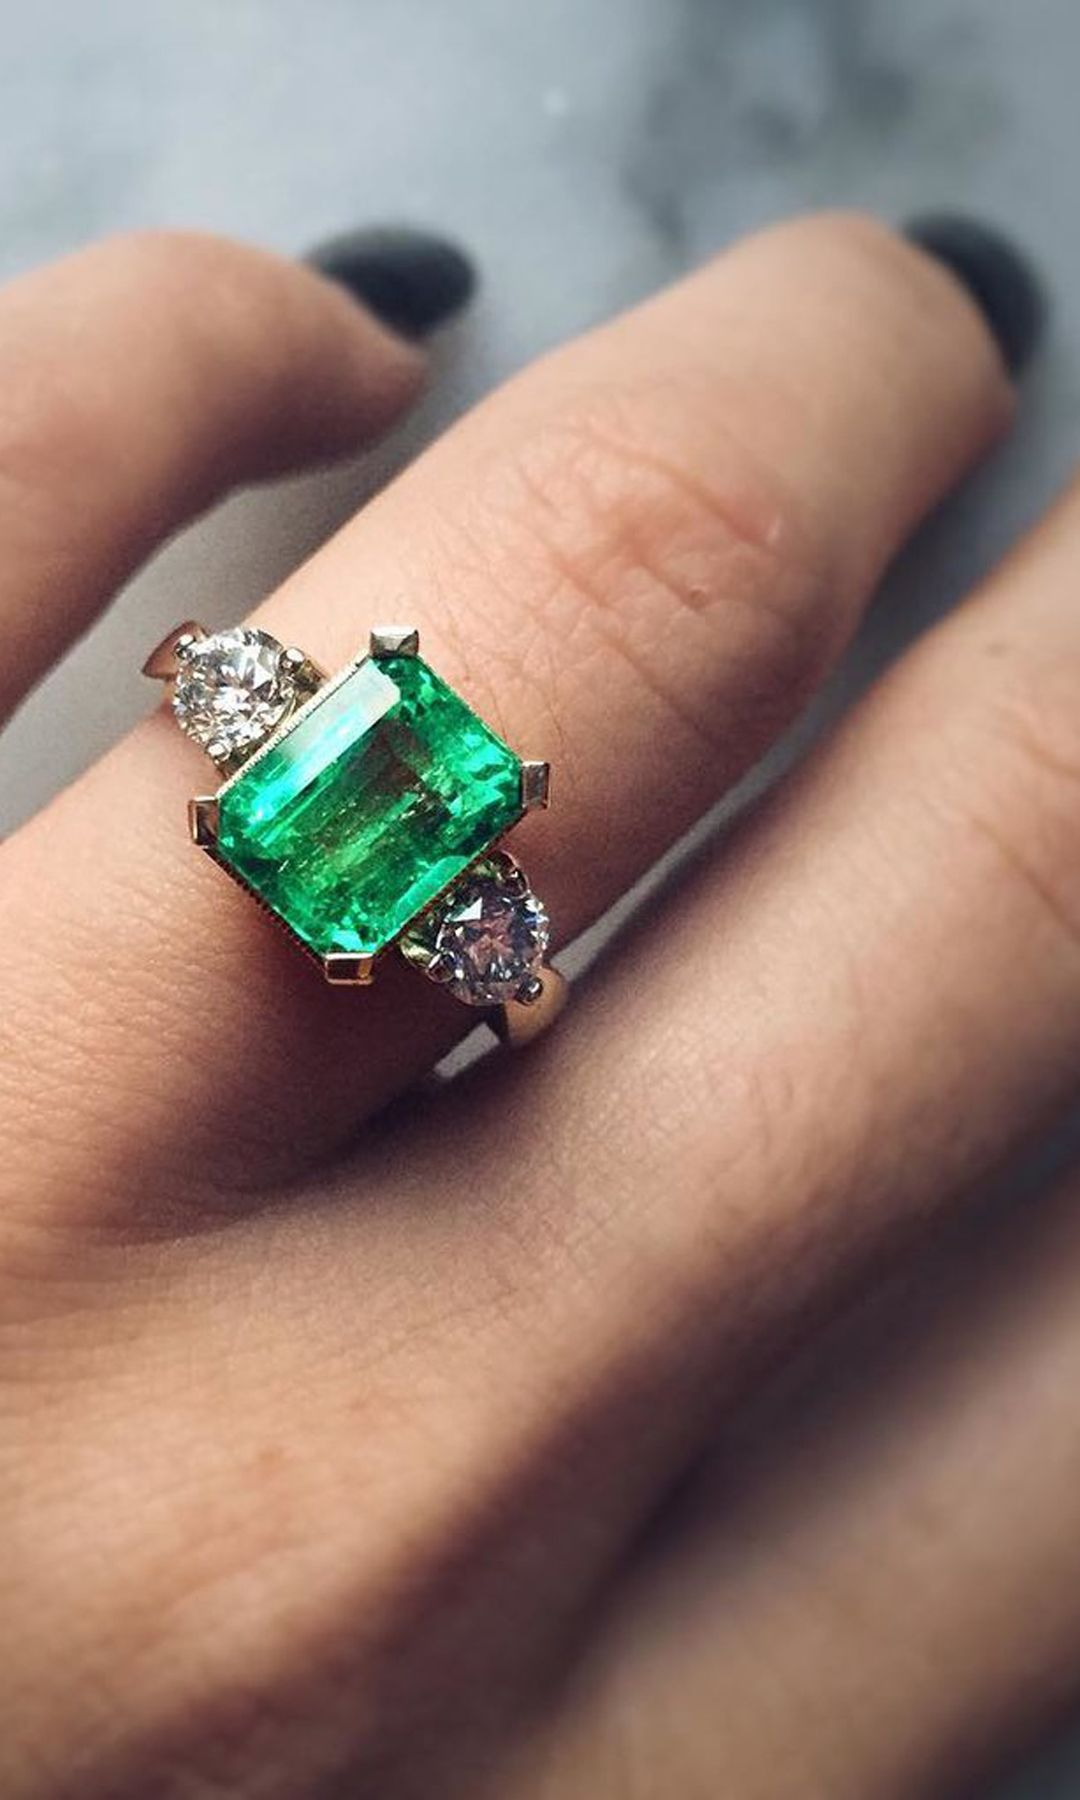 the here this say ring yes rings gorgeous for are that alternative gemstone stunning engagement will you bride green make to jewellery emerald